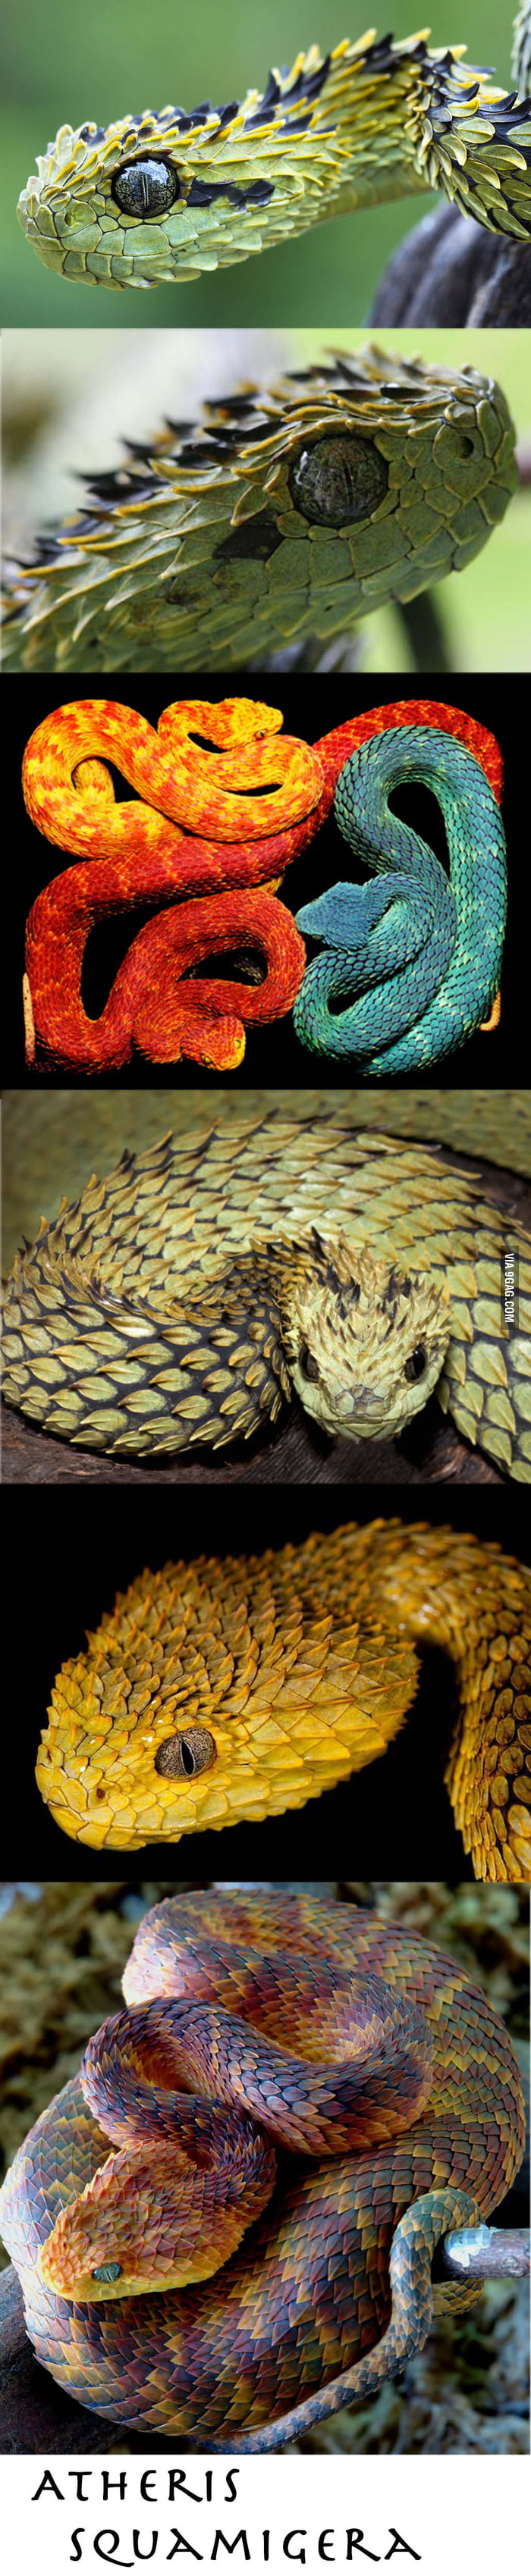 This is Atheris Squamigera, the most beautiful snake on earth